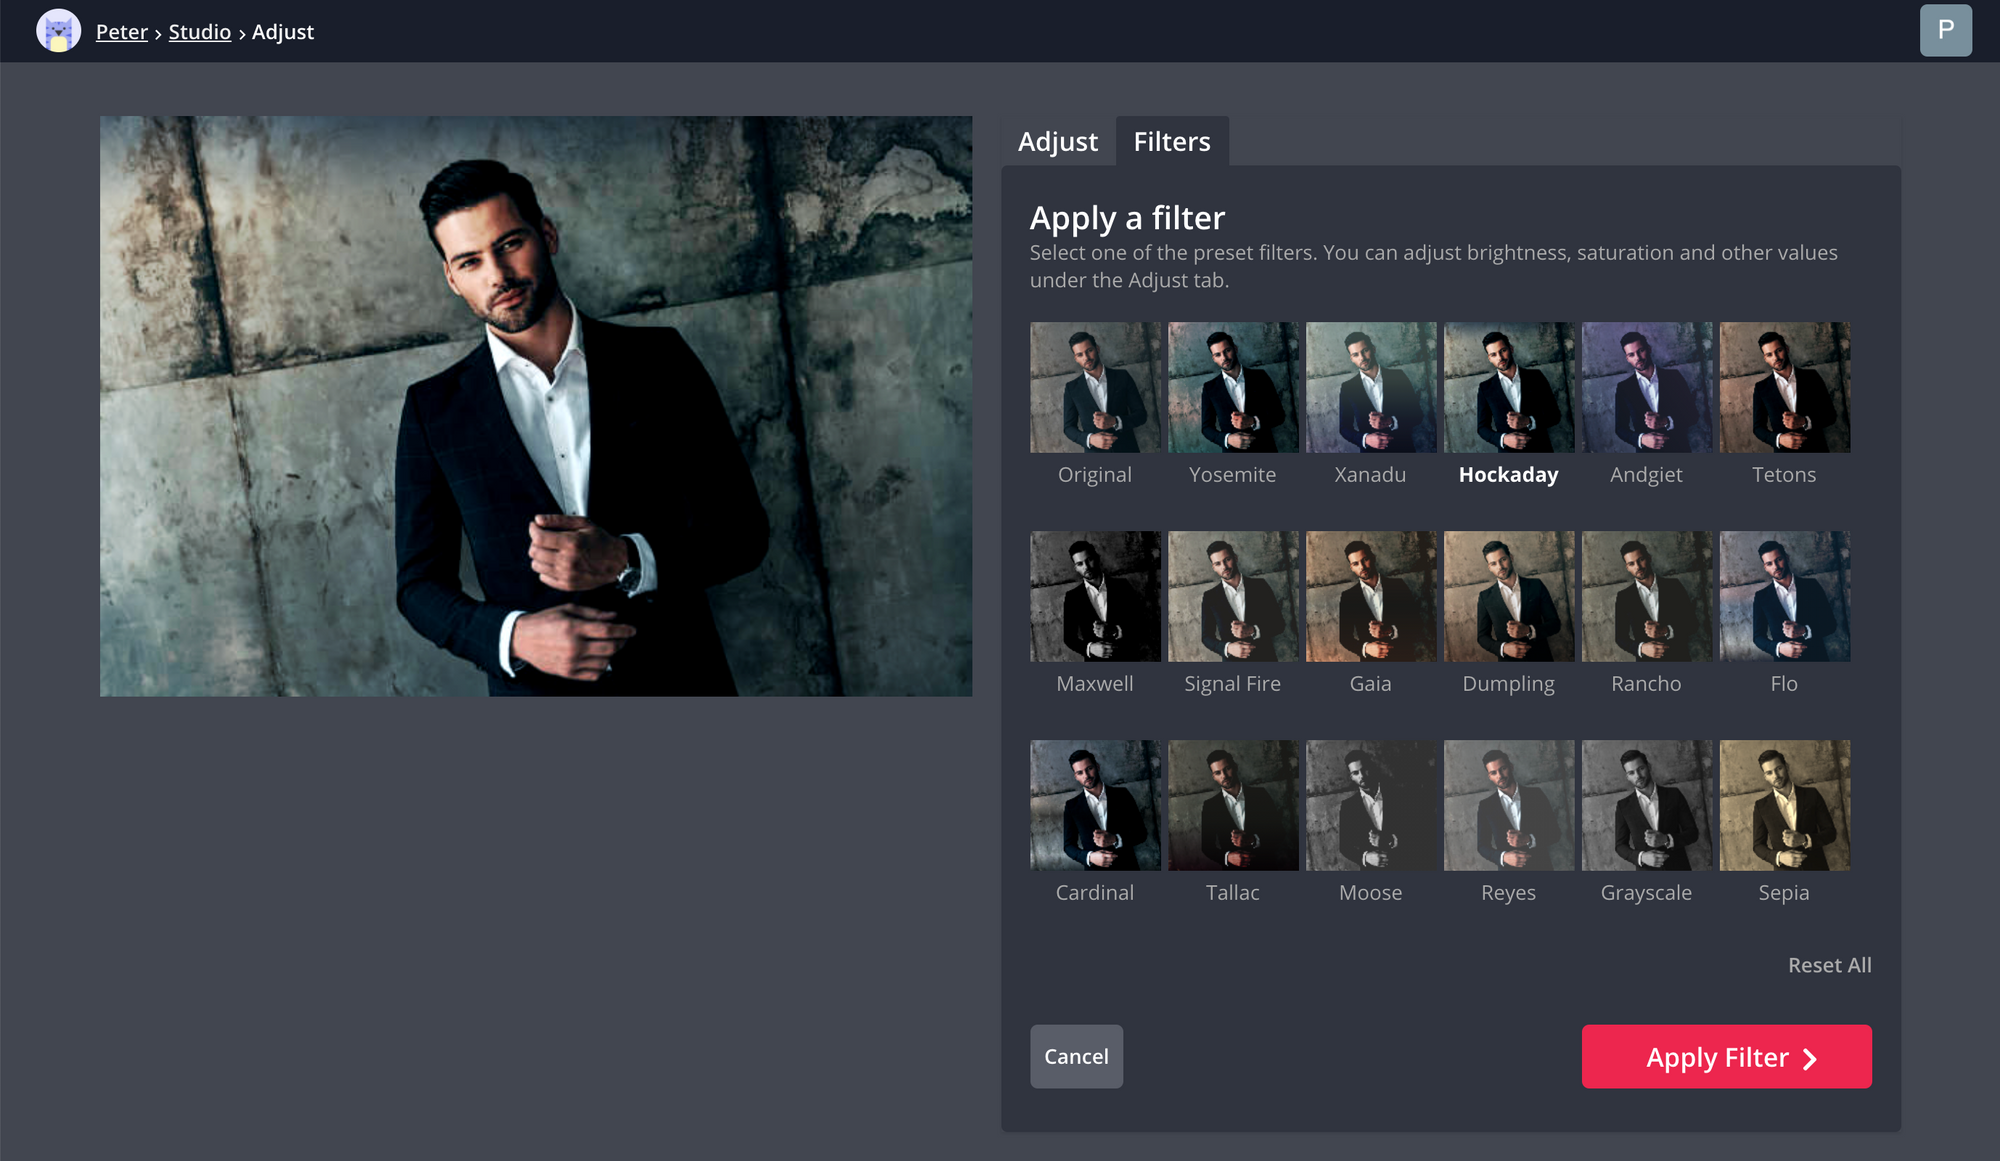 A screenshot showing how to add filters to images in the Kapwing Studio.